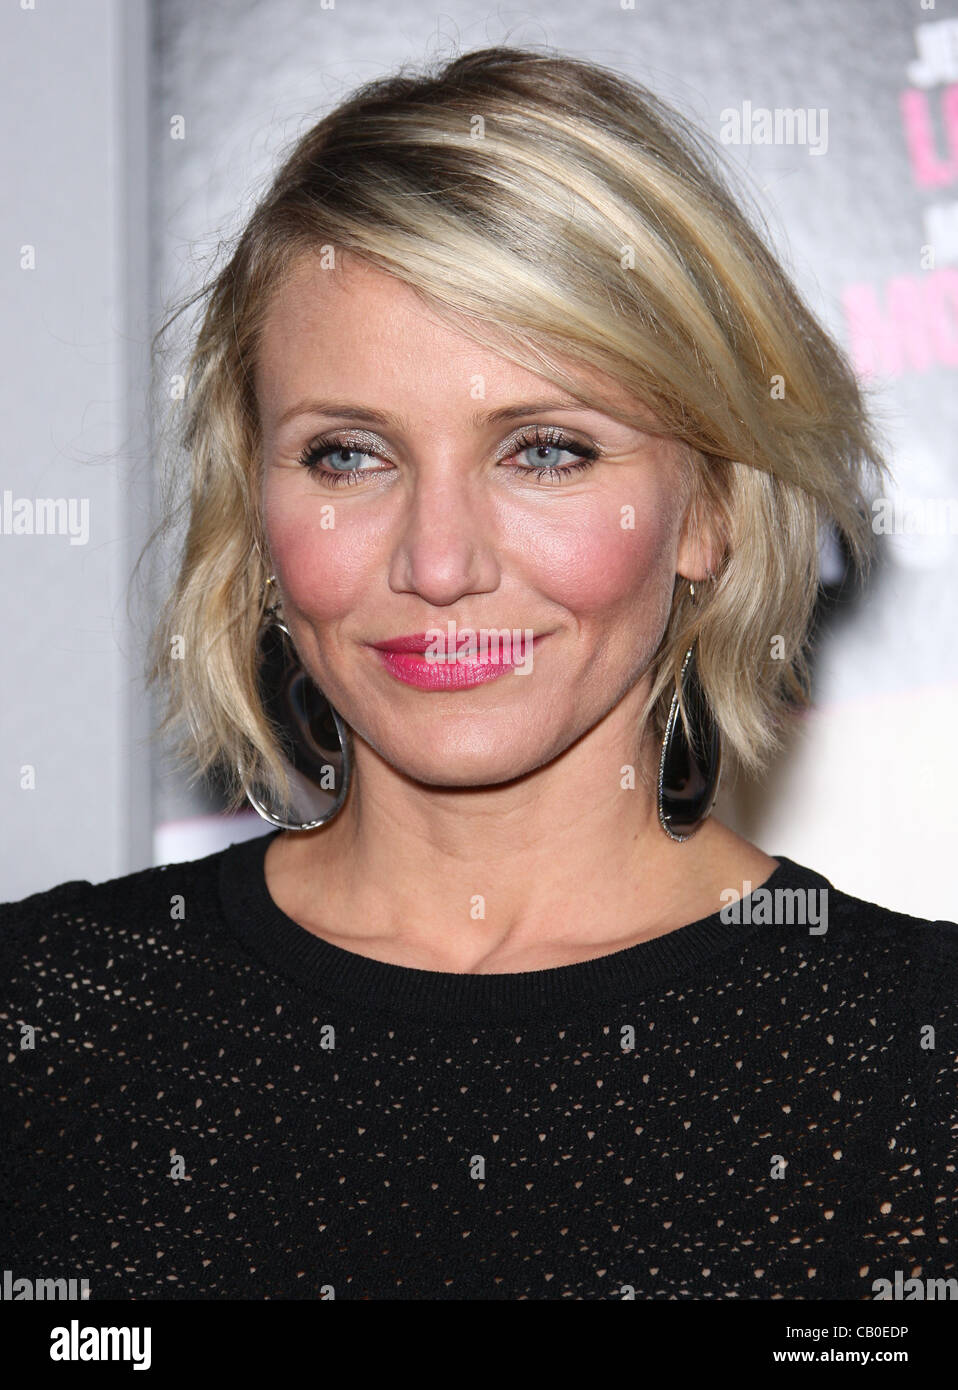 CAMERON DIAZ WHAT TO EXPECT WHEN YOU'RE EXPECTING. LOS ANGELES PREMIERE HOLLYWOOD LOS ANGELES CALIFORNIA USA - Stock Image